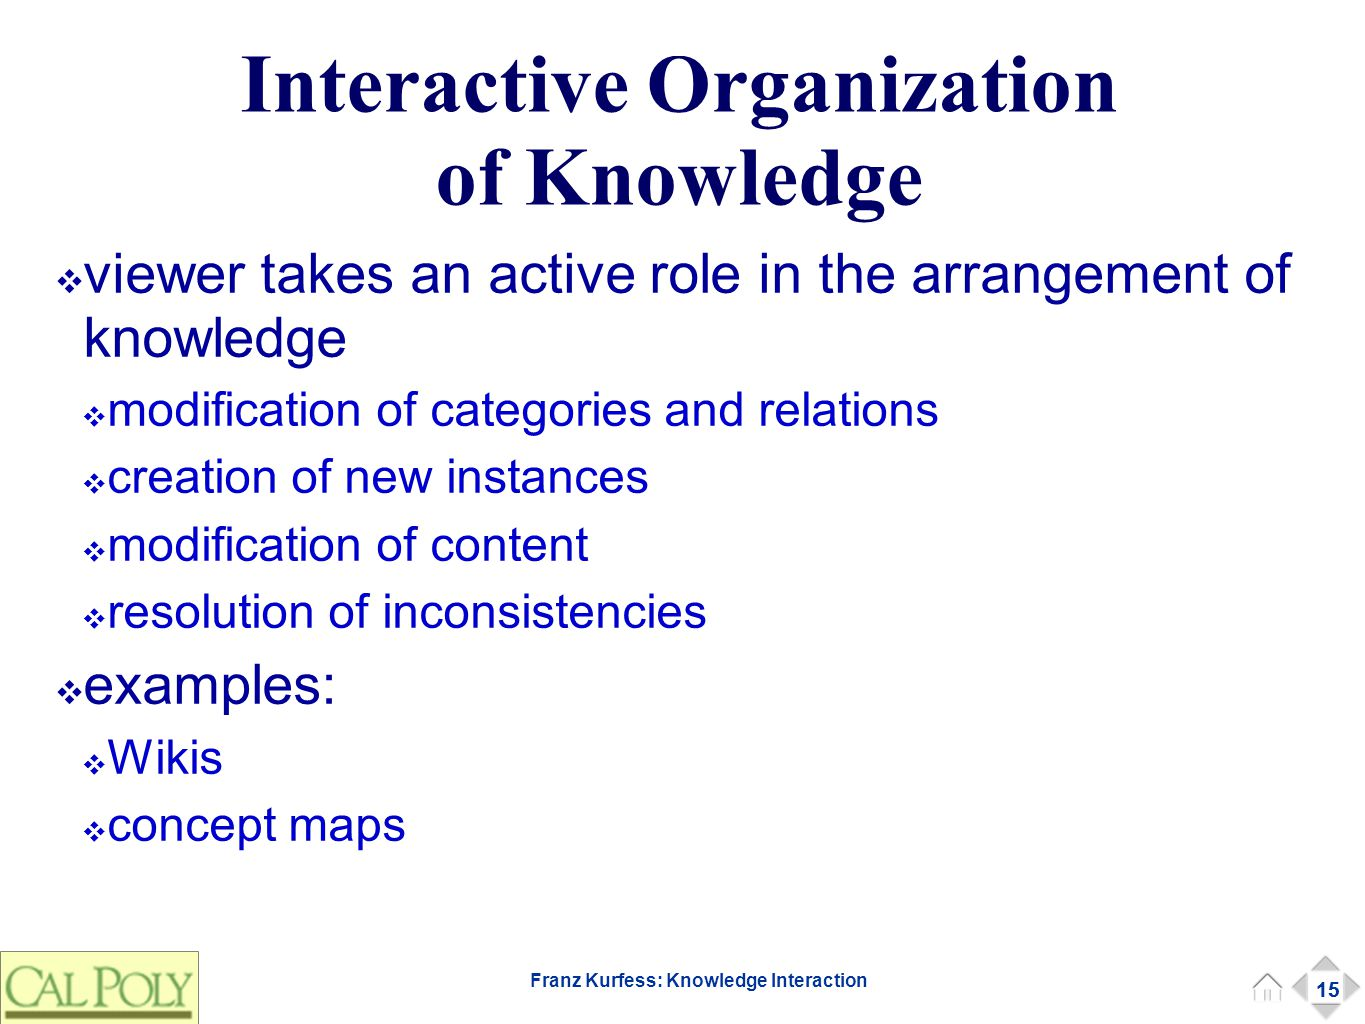 15 Franz Kurfess: Knowledge Interaction Interactive Organization of Knowledge ❖ viewer takes an active role in the arrangement of knowledge ❖ modification of categories and relations ❖ creation of new instances ❖ modification of content ❖ resolution of inconsistencies ❖ examples: ❖ Wikis ❖ concept maps 15